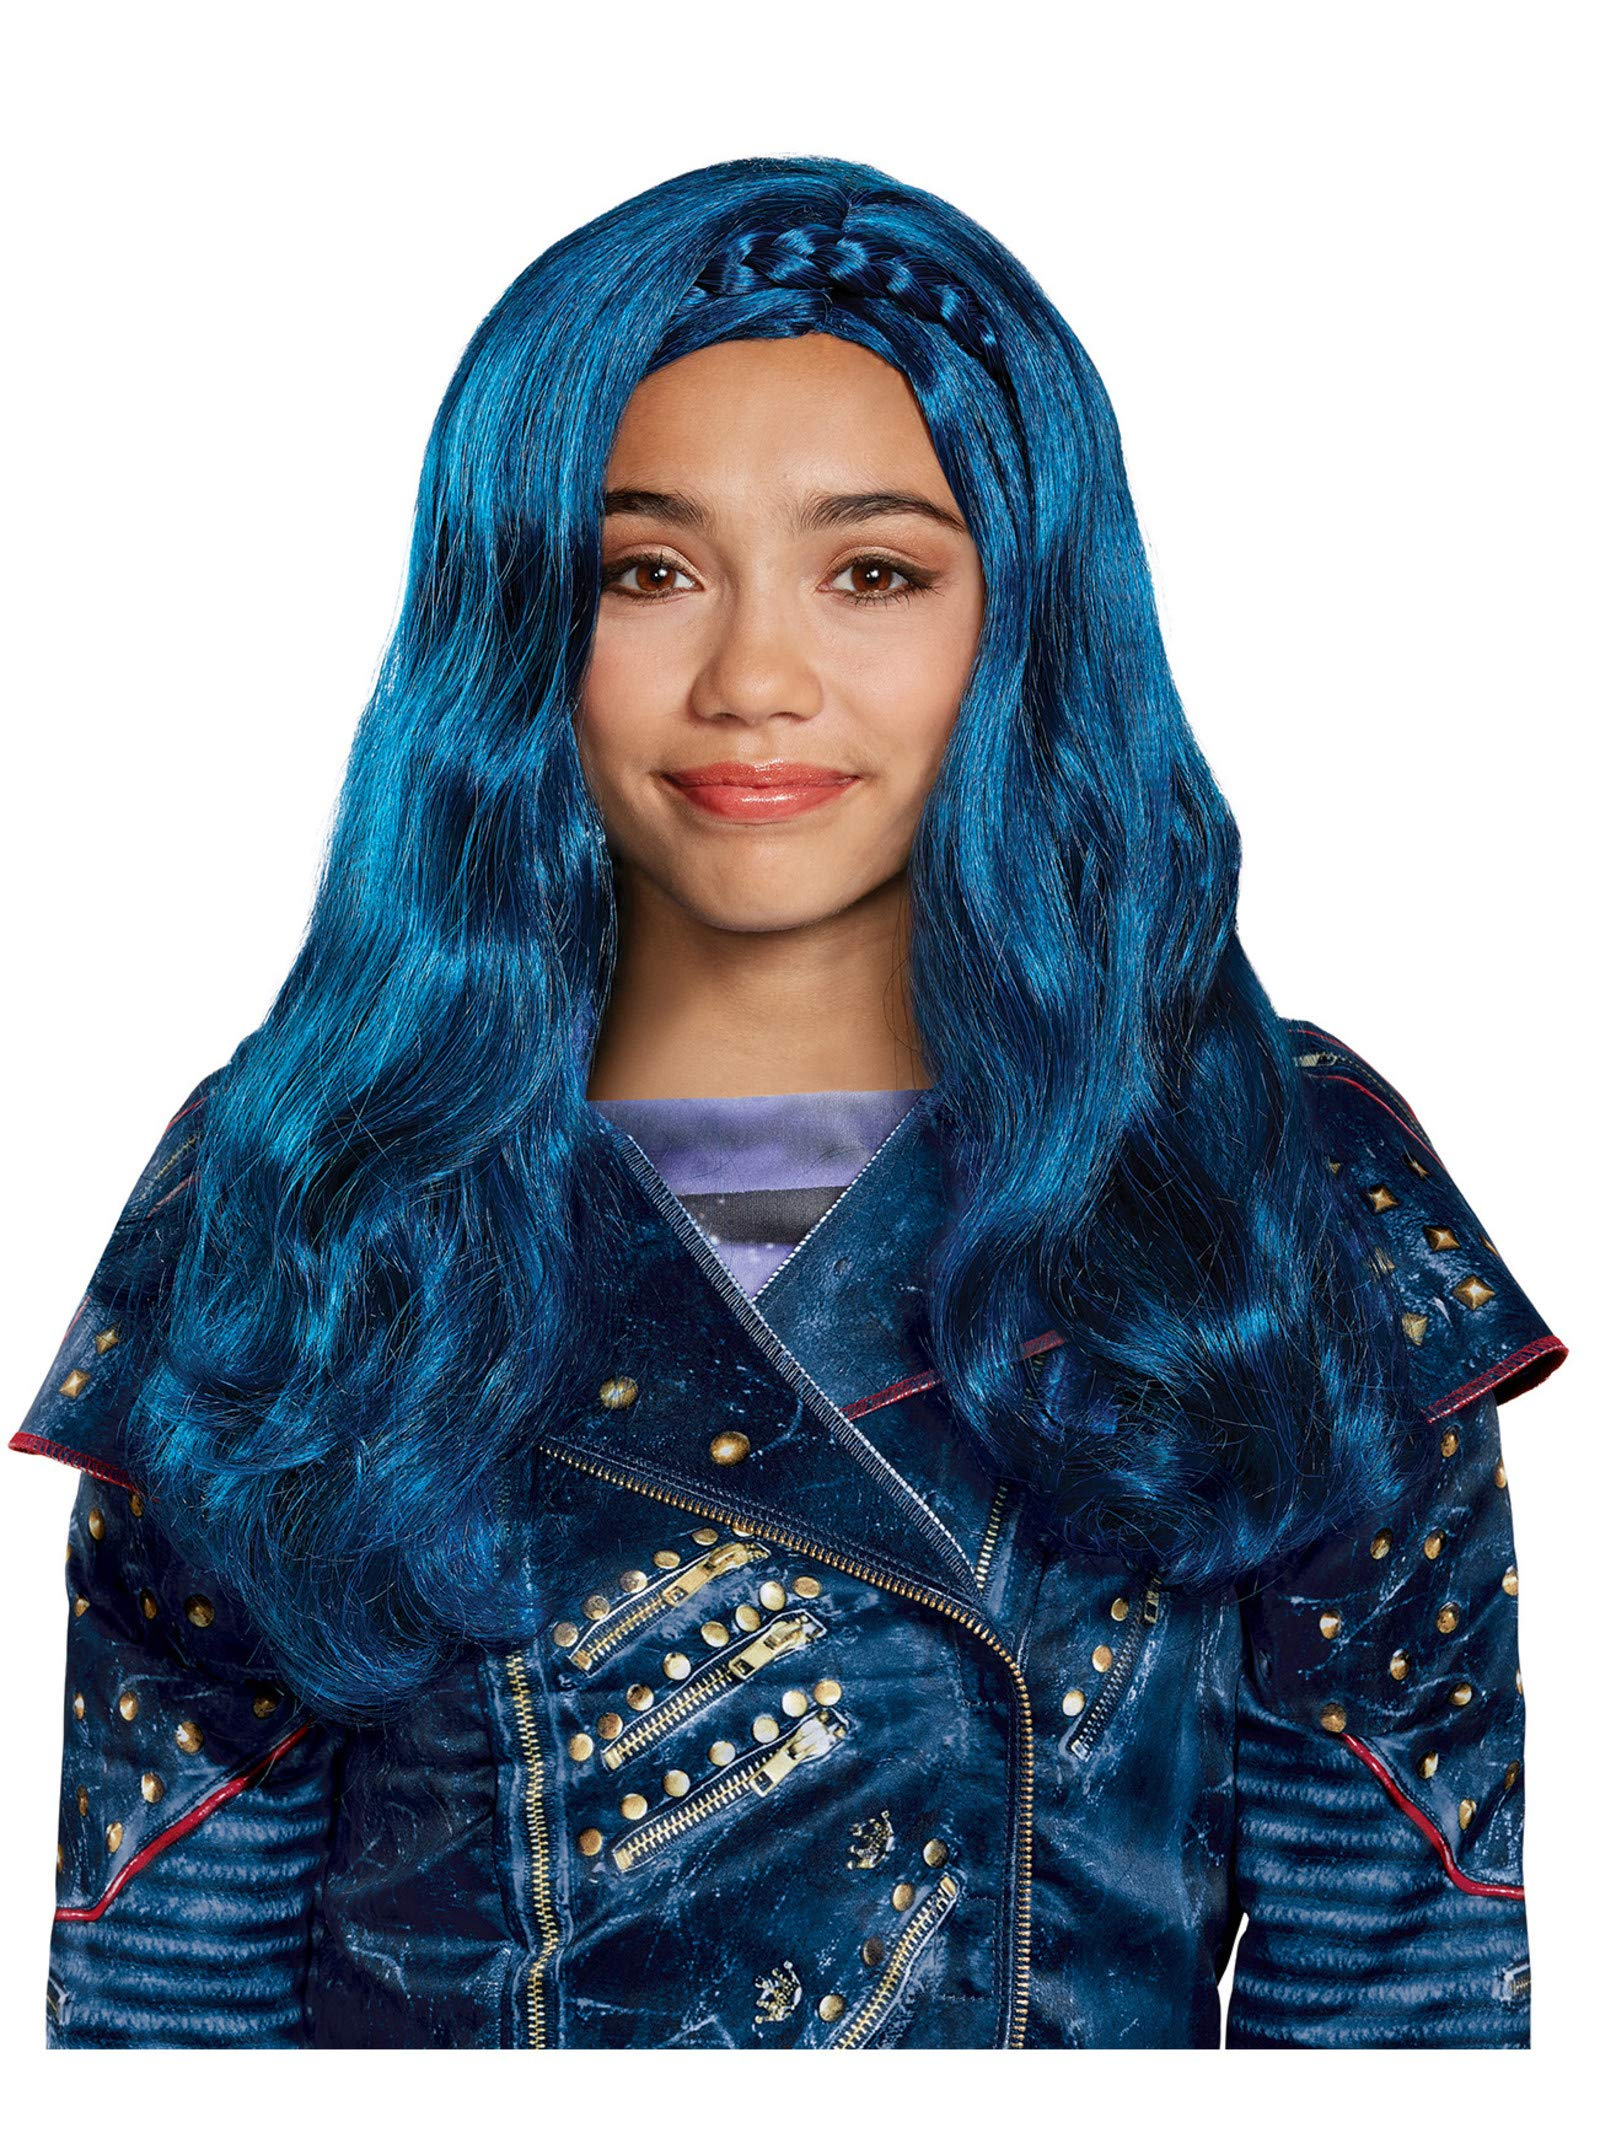 Disney Evie Descendants 2 Wig, One Size by Disguise